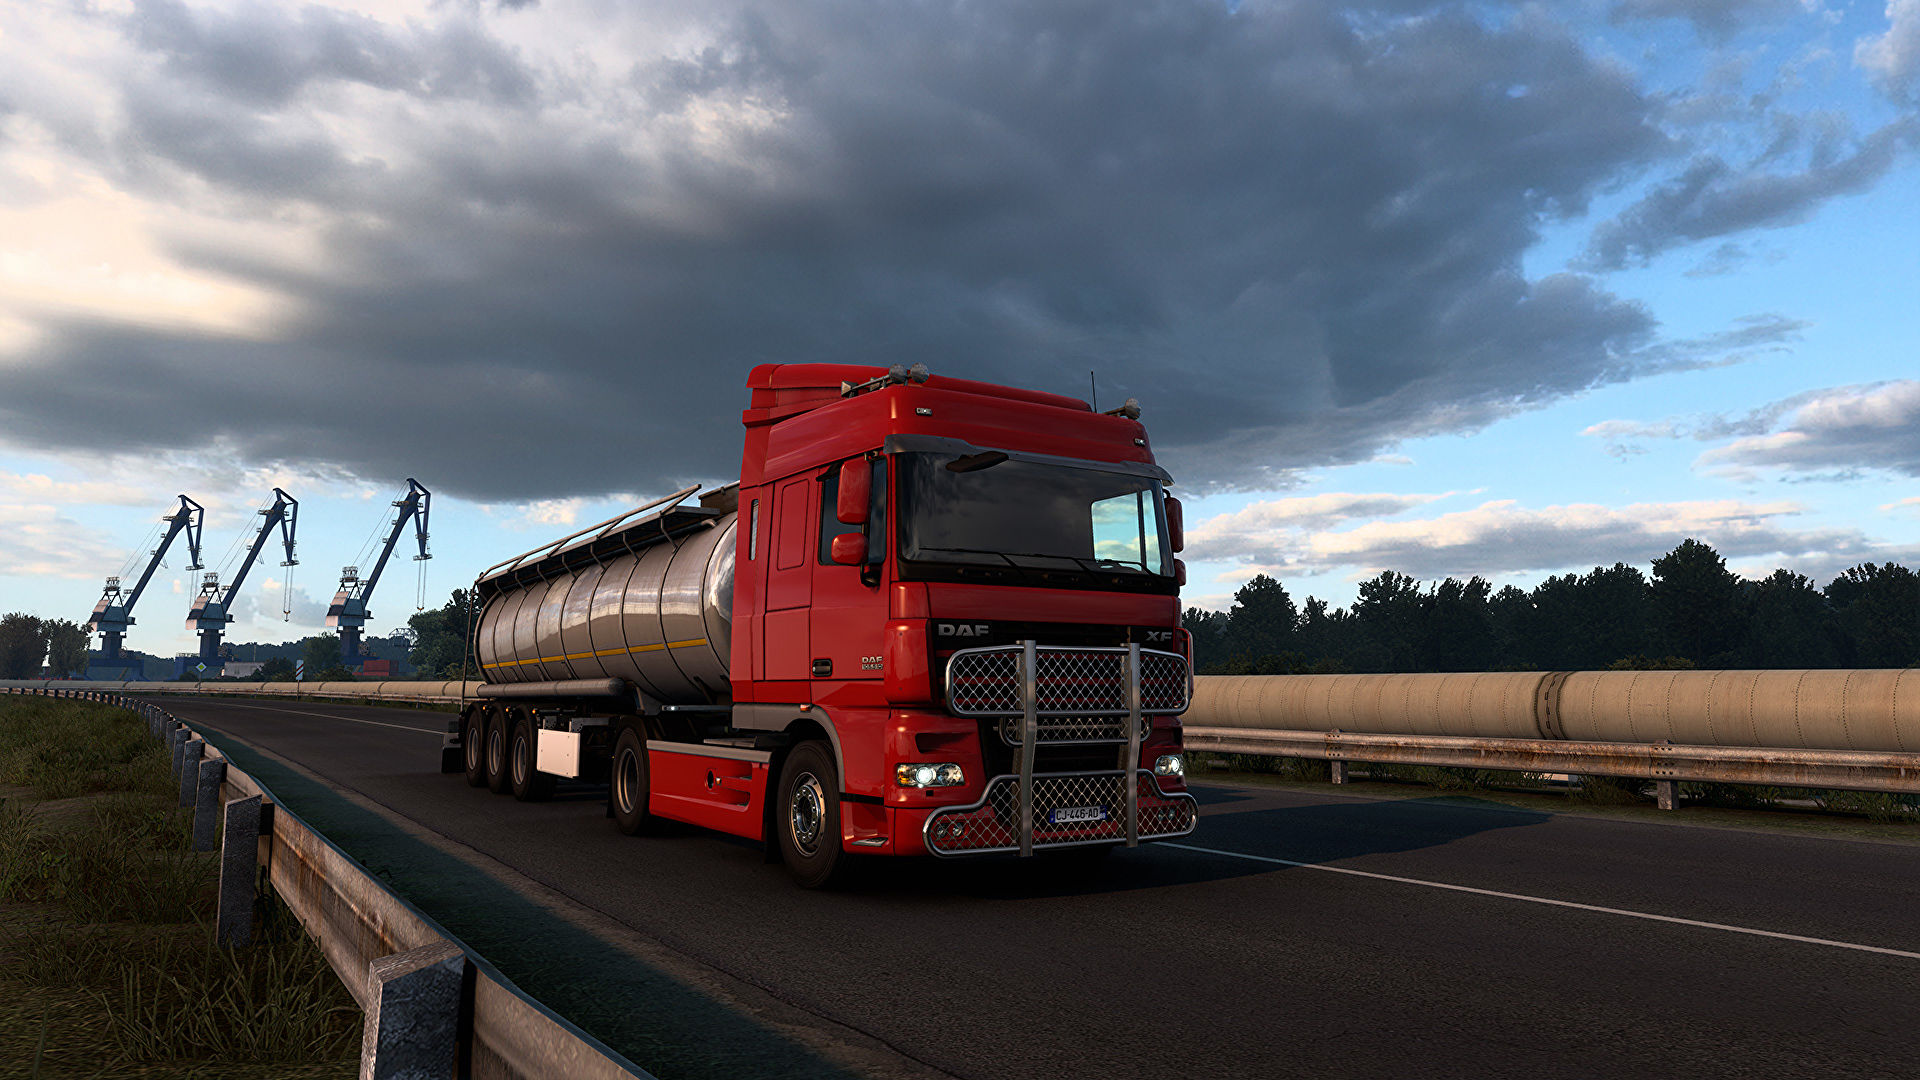 Euro Truck Simulator 2 now has fancier lighting and a fancier Germany